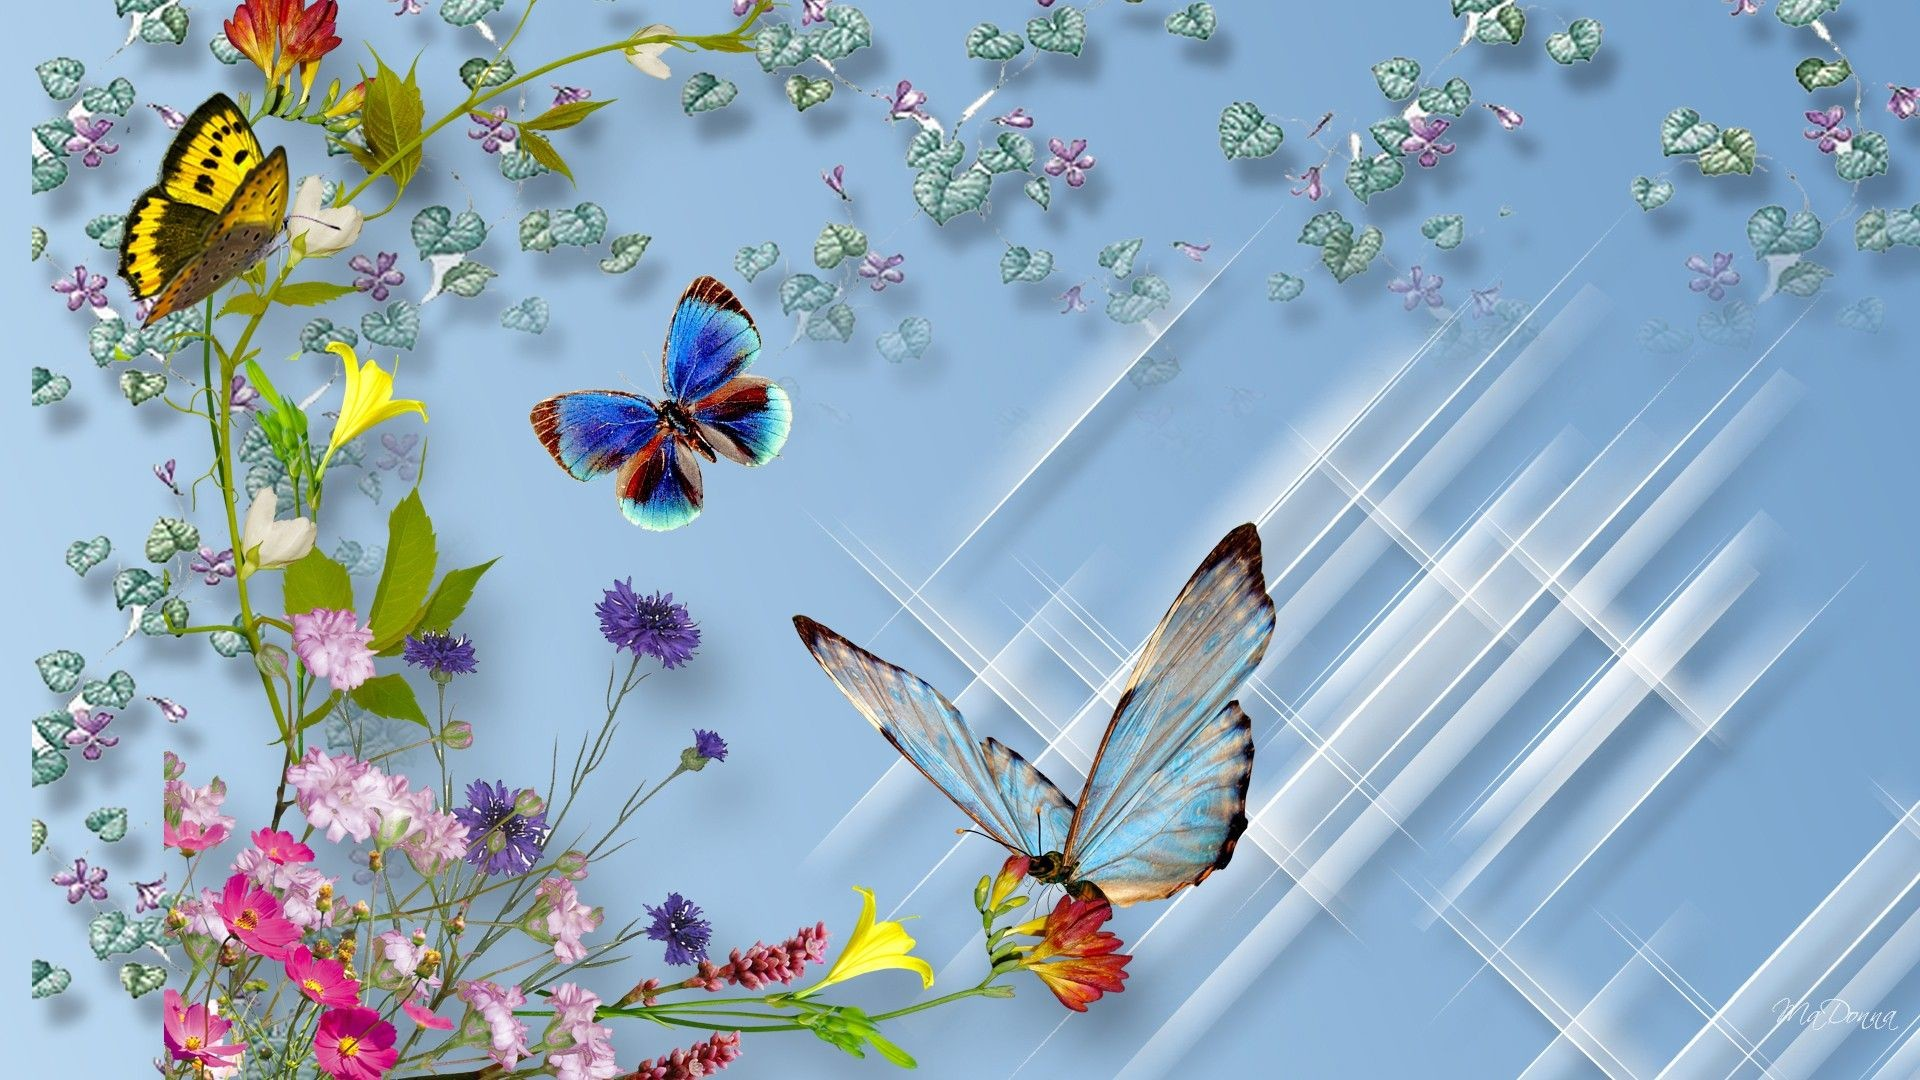 Butterfly And Flower Wallpapers – Wallpaper Cave